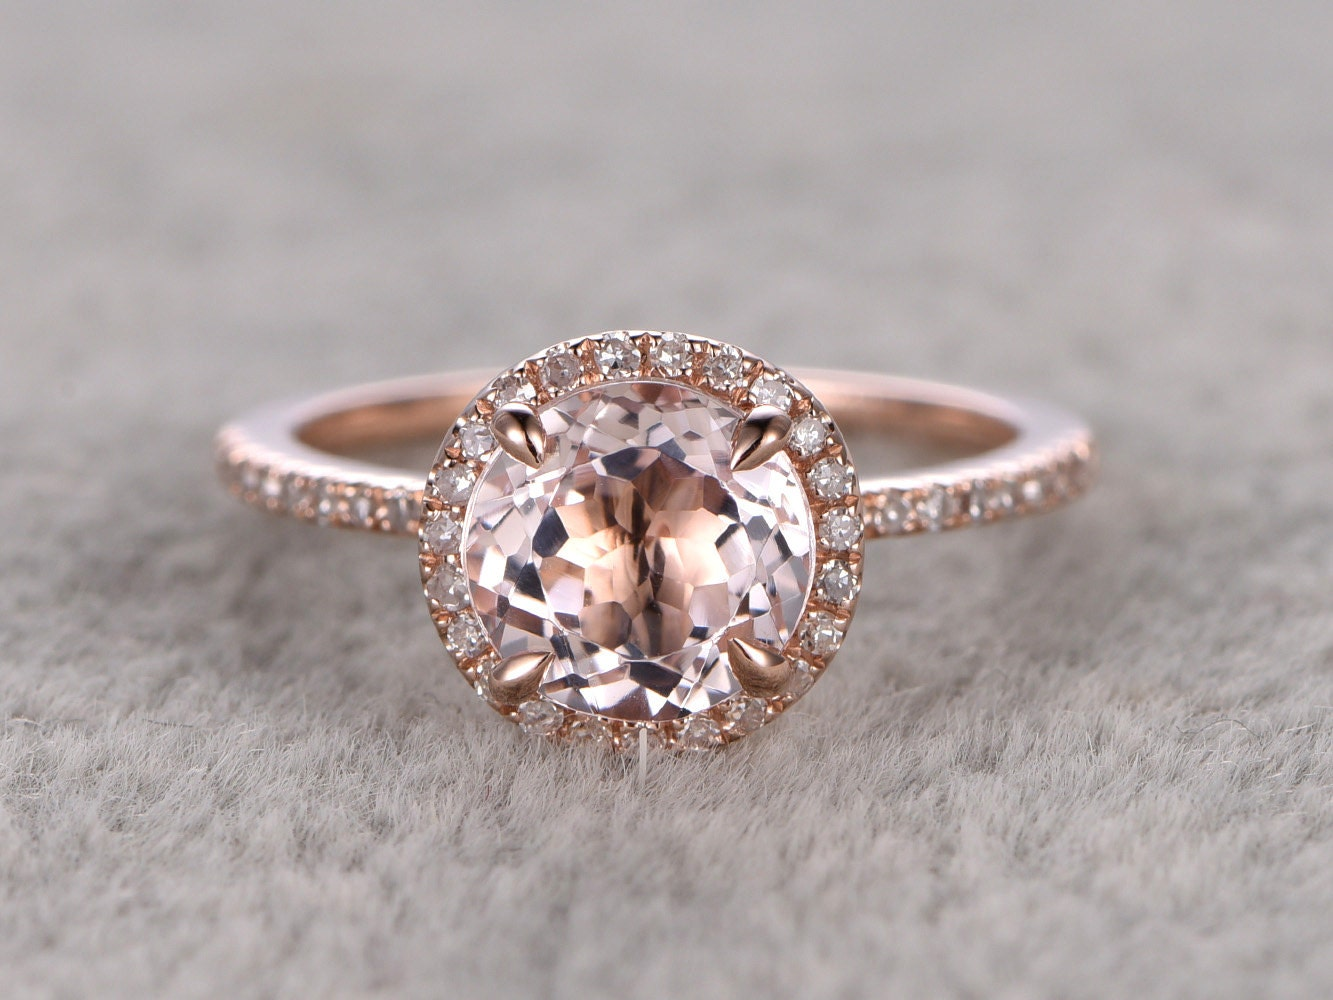 7mm Morganite Engagement Ring Rose GoldDiamond Wedding By